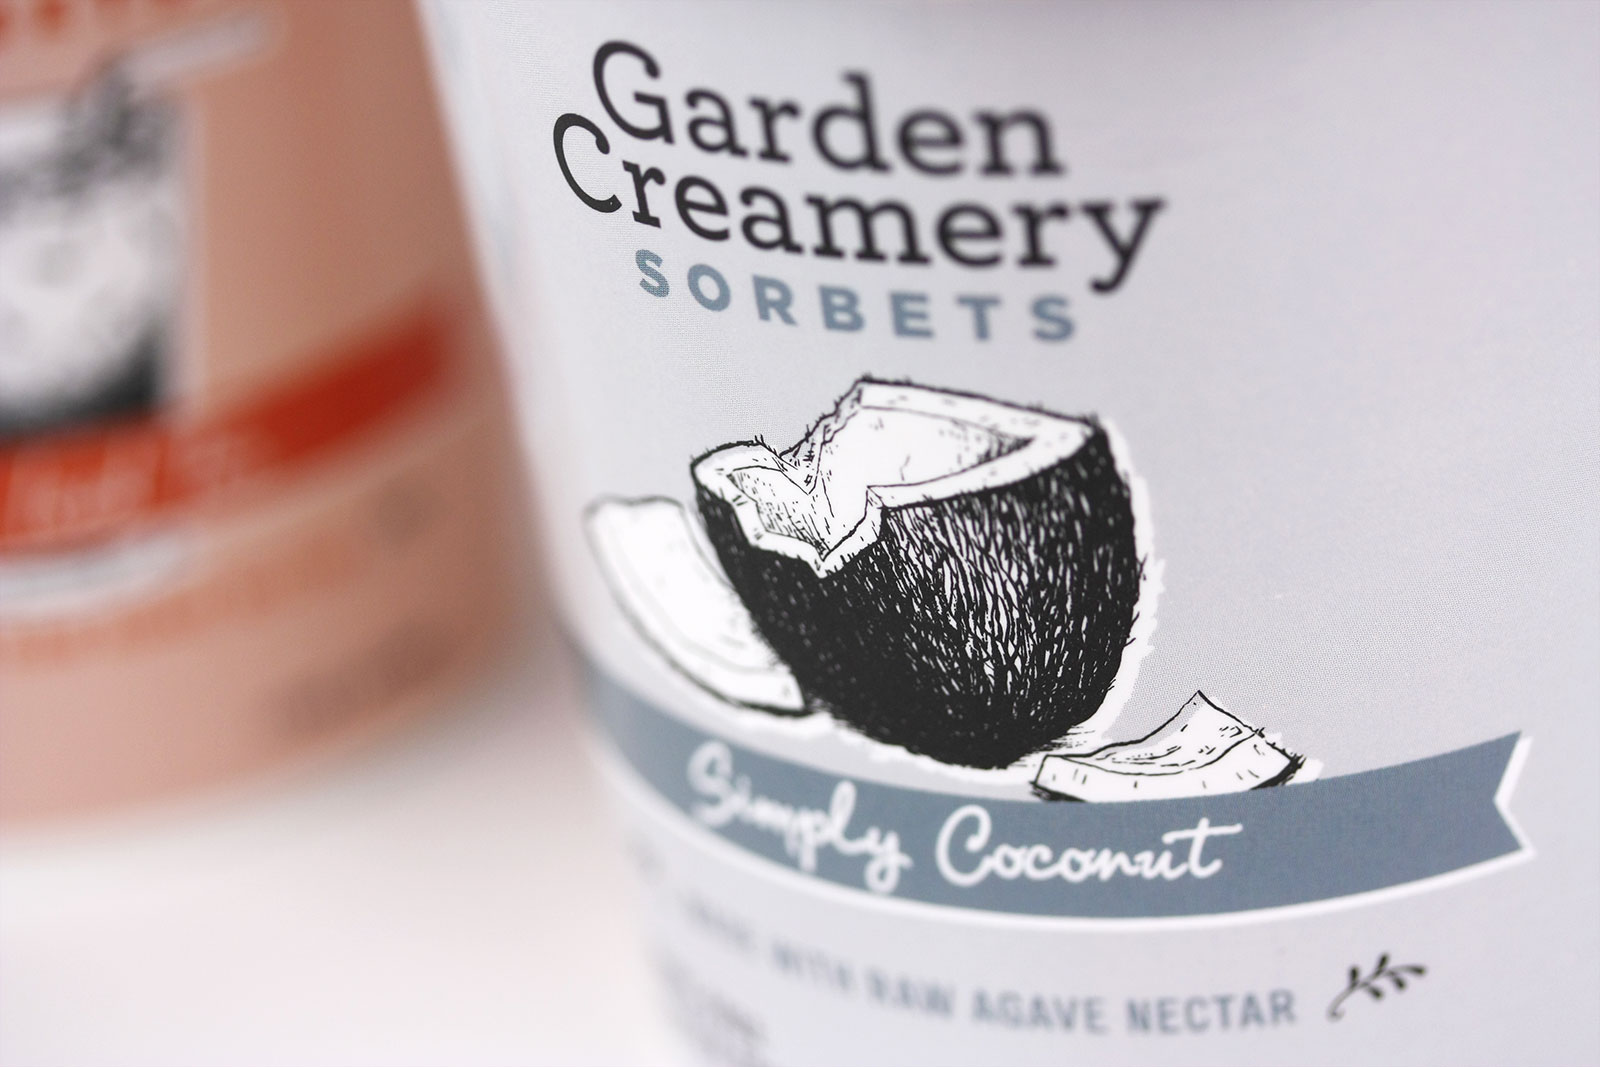 Image of work from the Garden Creamery Sorbets project.